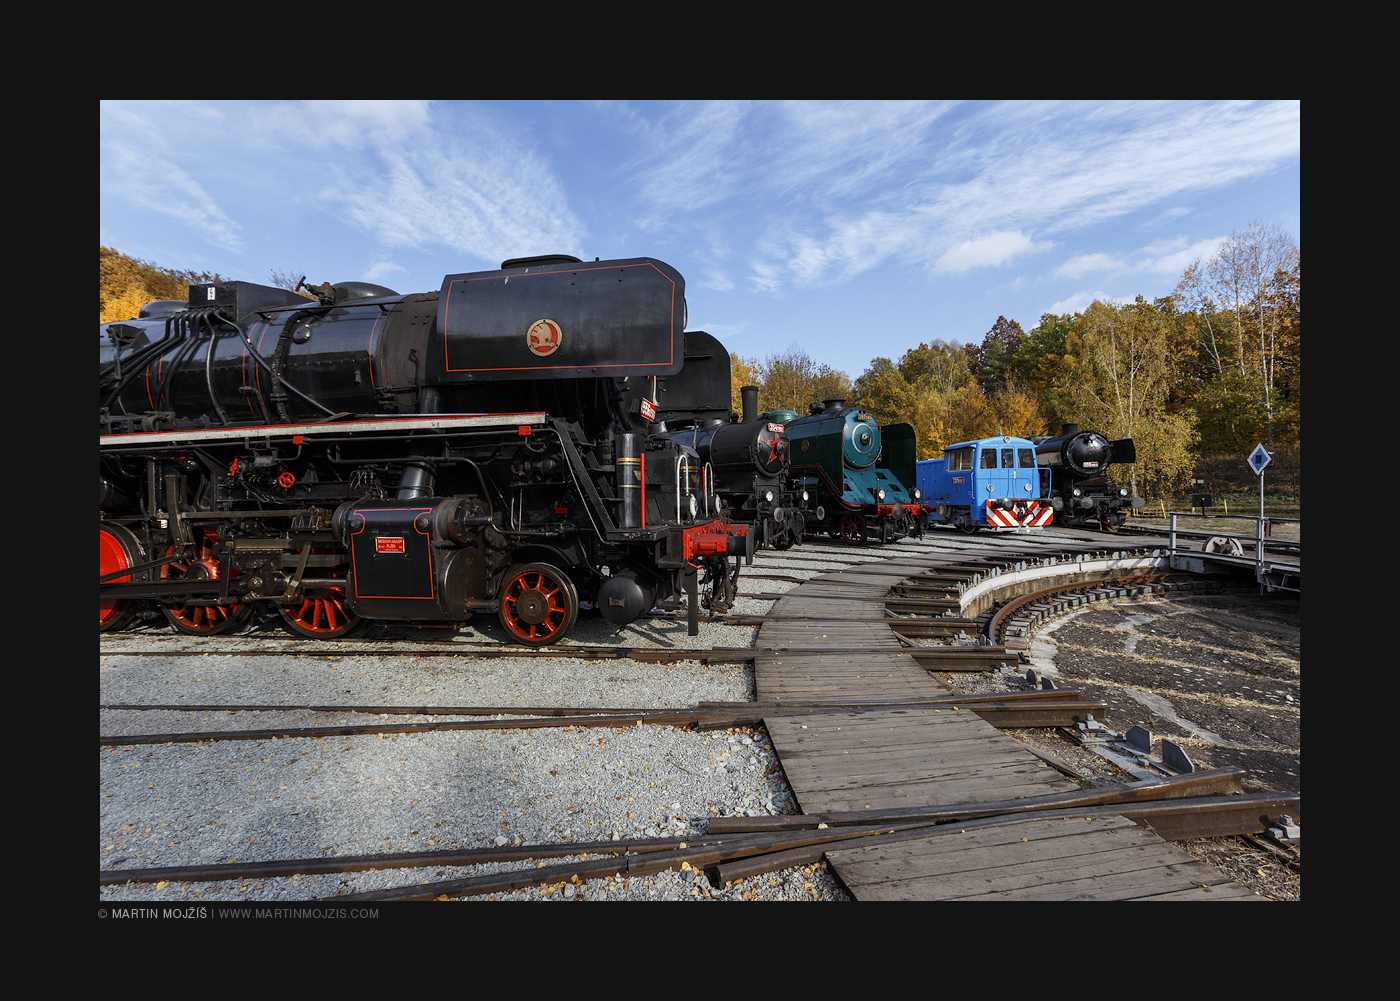 Photograph from railway (railroad) museum in Luzna near Rakovnik in Czech Republic.